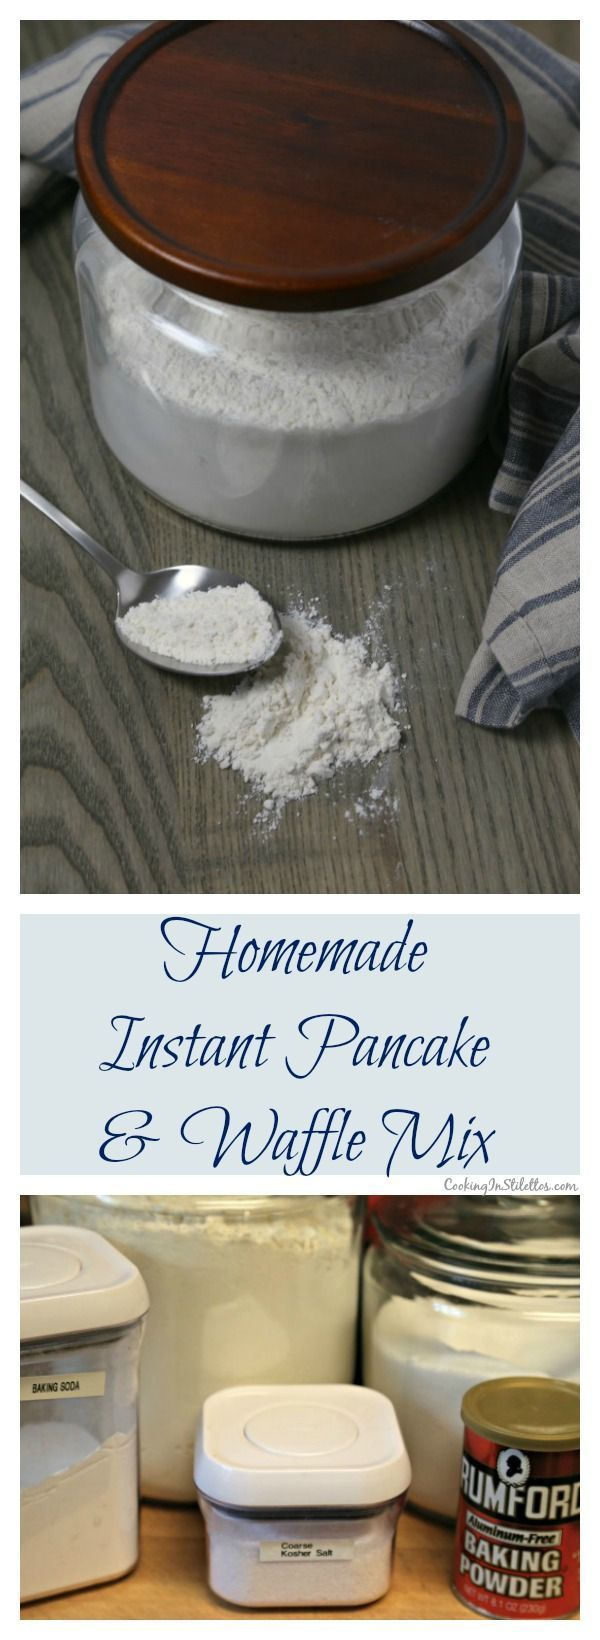 Forget about those store-bought pancake mixes - this easy Homemade Instant Pancake and Waffle Mix from CookingInStilettos.com uses just a few ingredients already in your pantry and couldn't be easier to make.